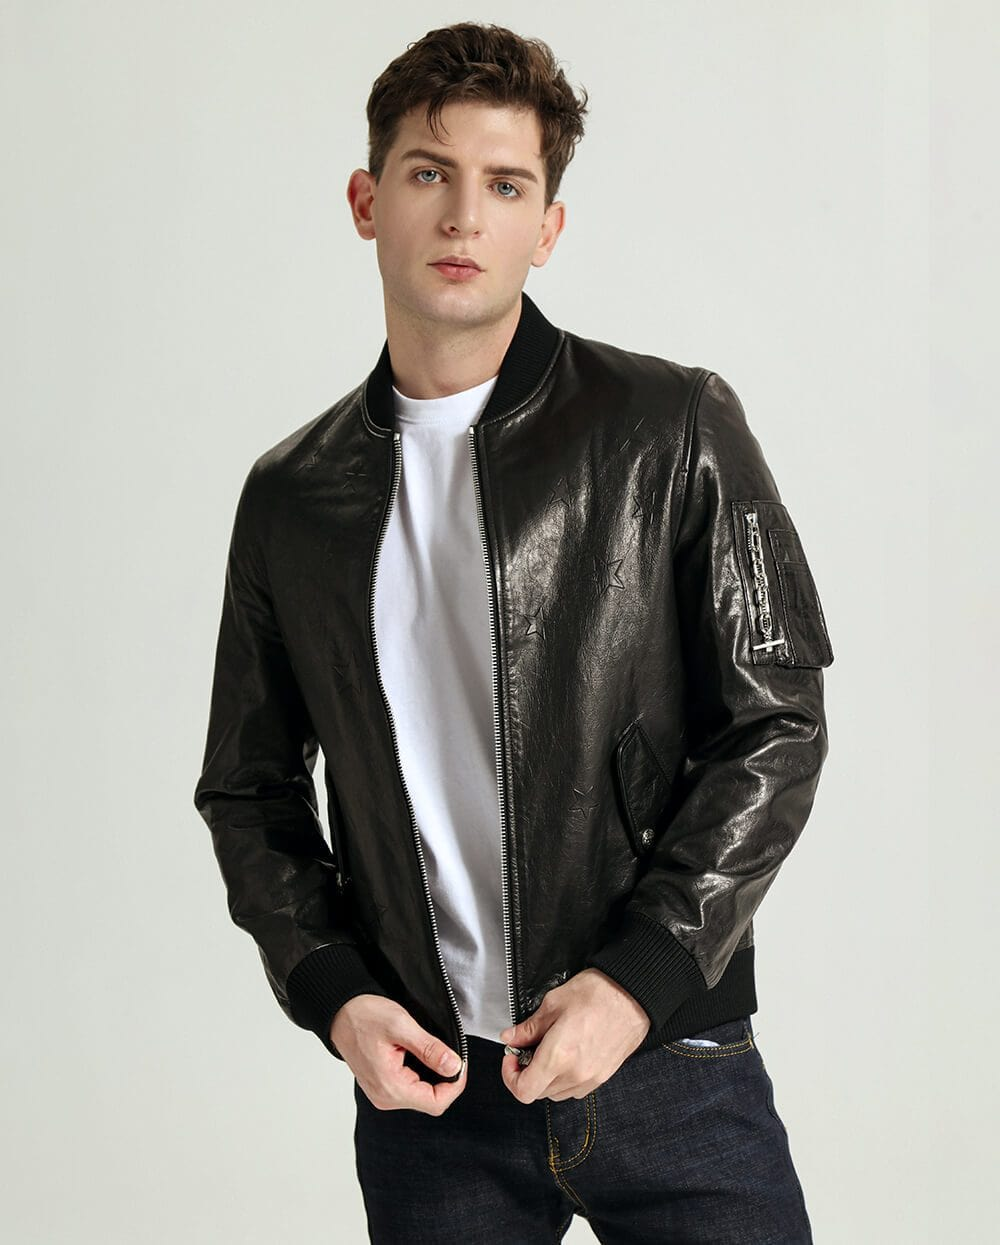 Embroidered Vegetable Tanned Goatskin Baseball Jacket with Sleeve Pocket